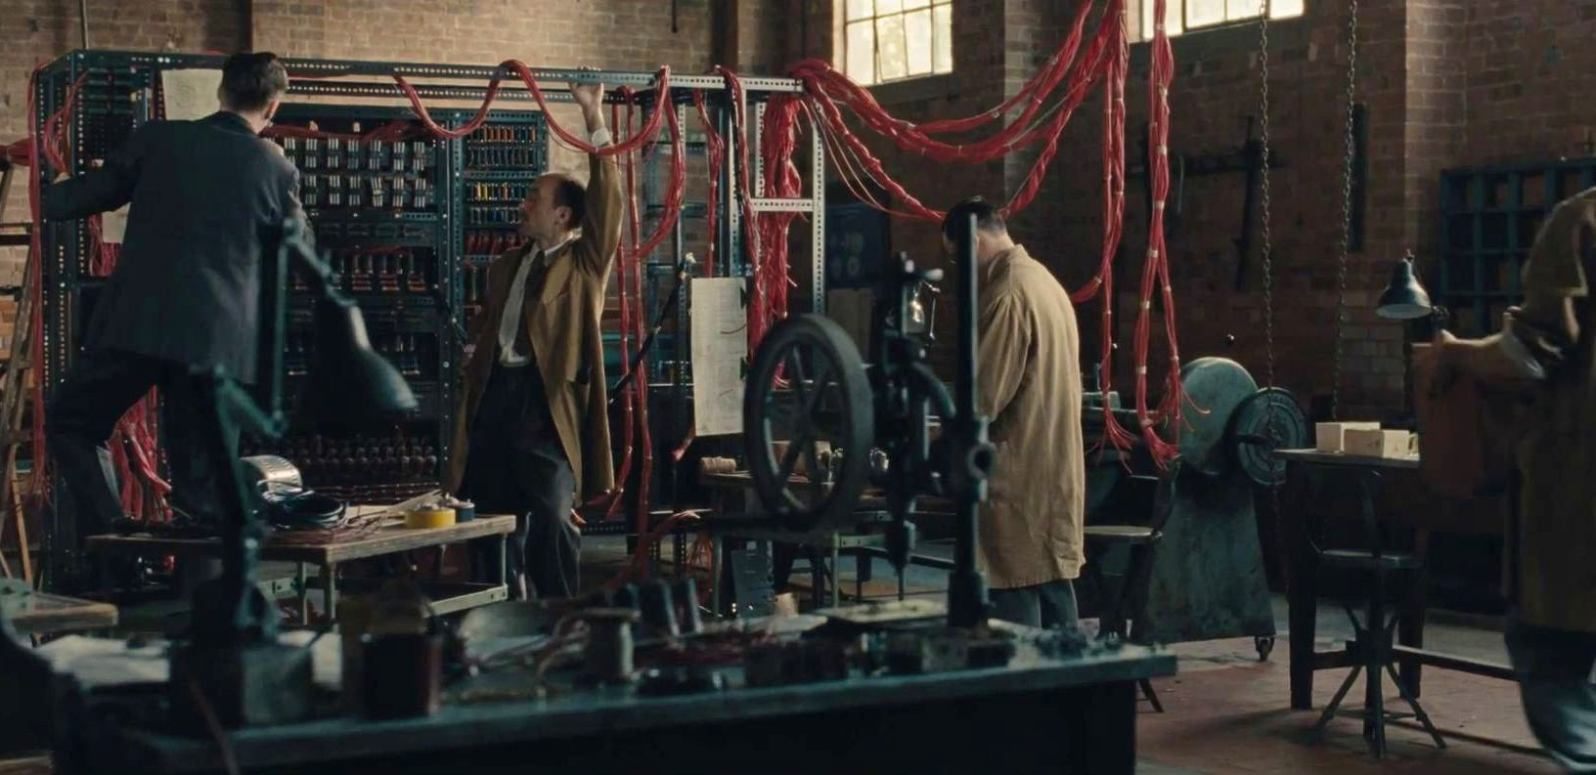 The Imitation Game (2014) | Turing Machine